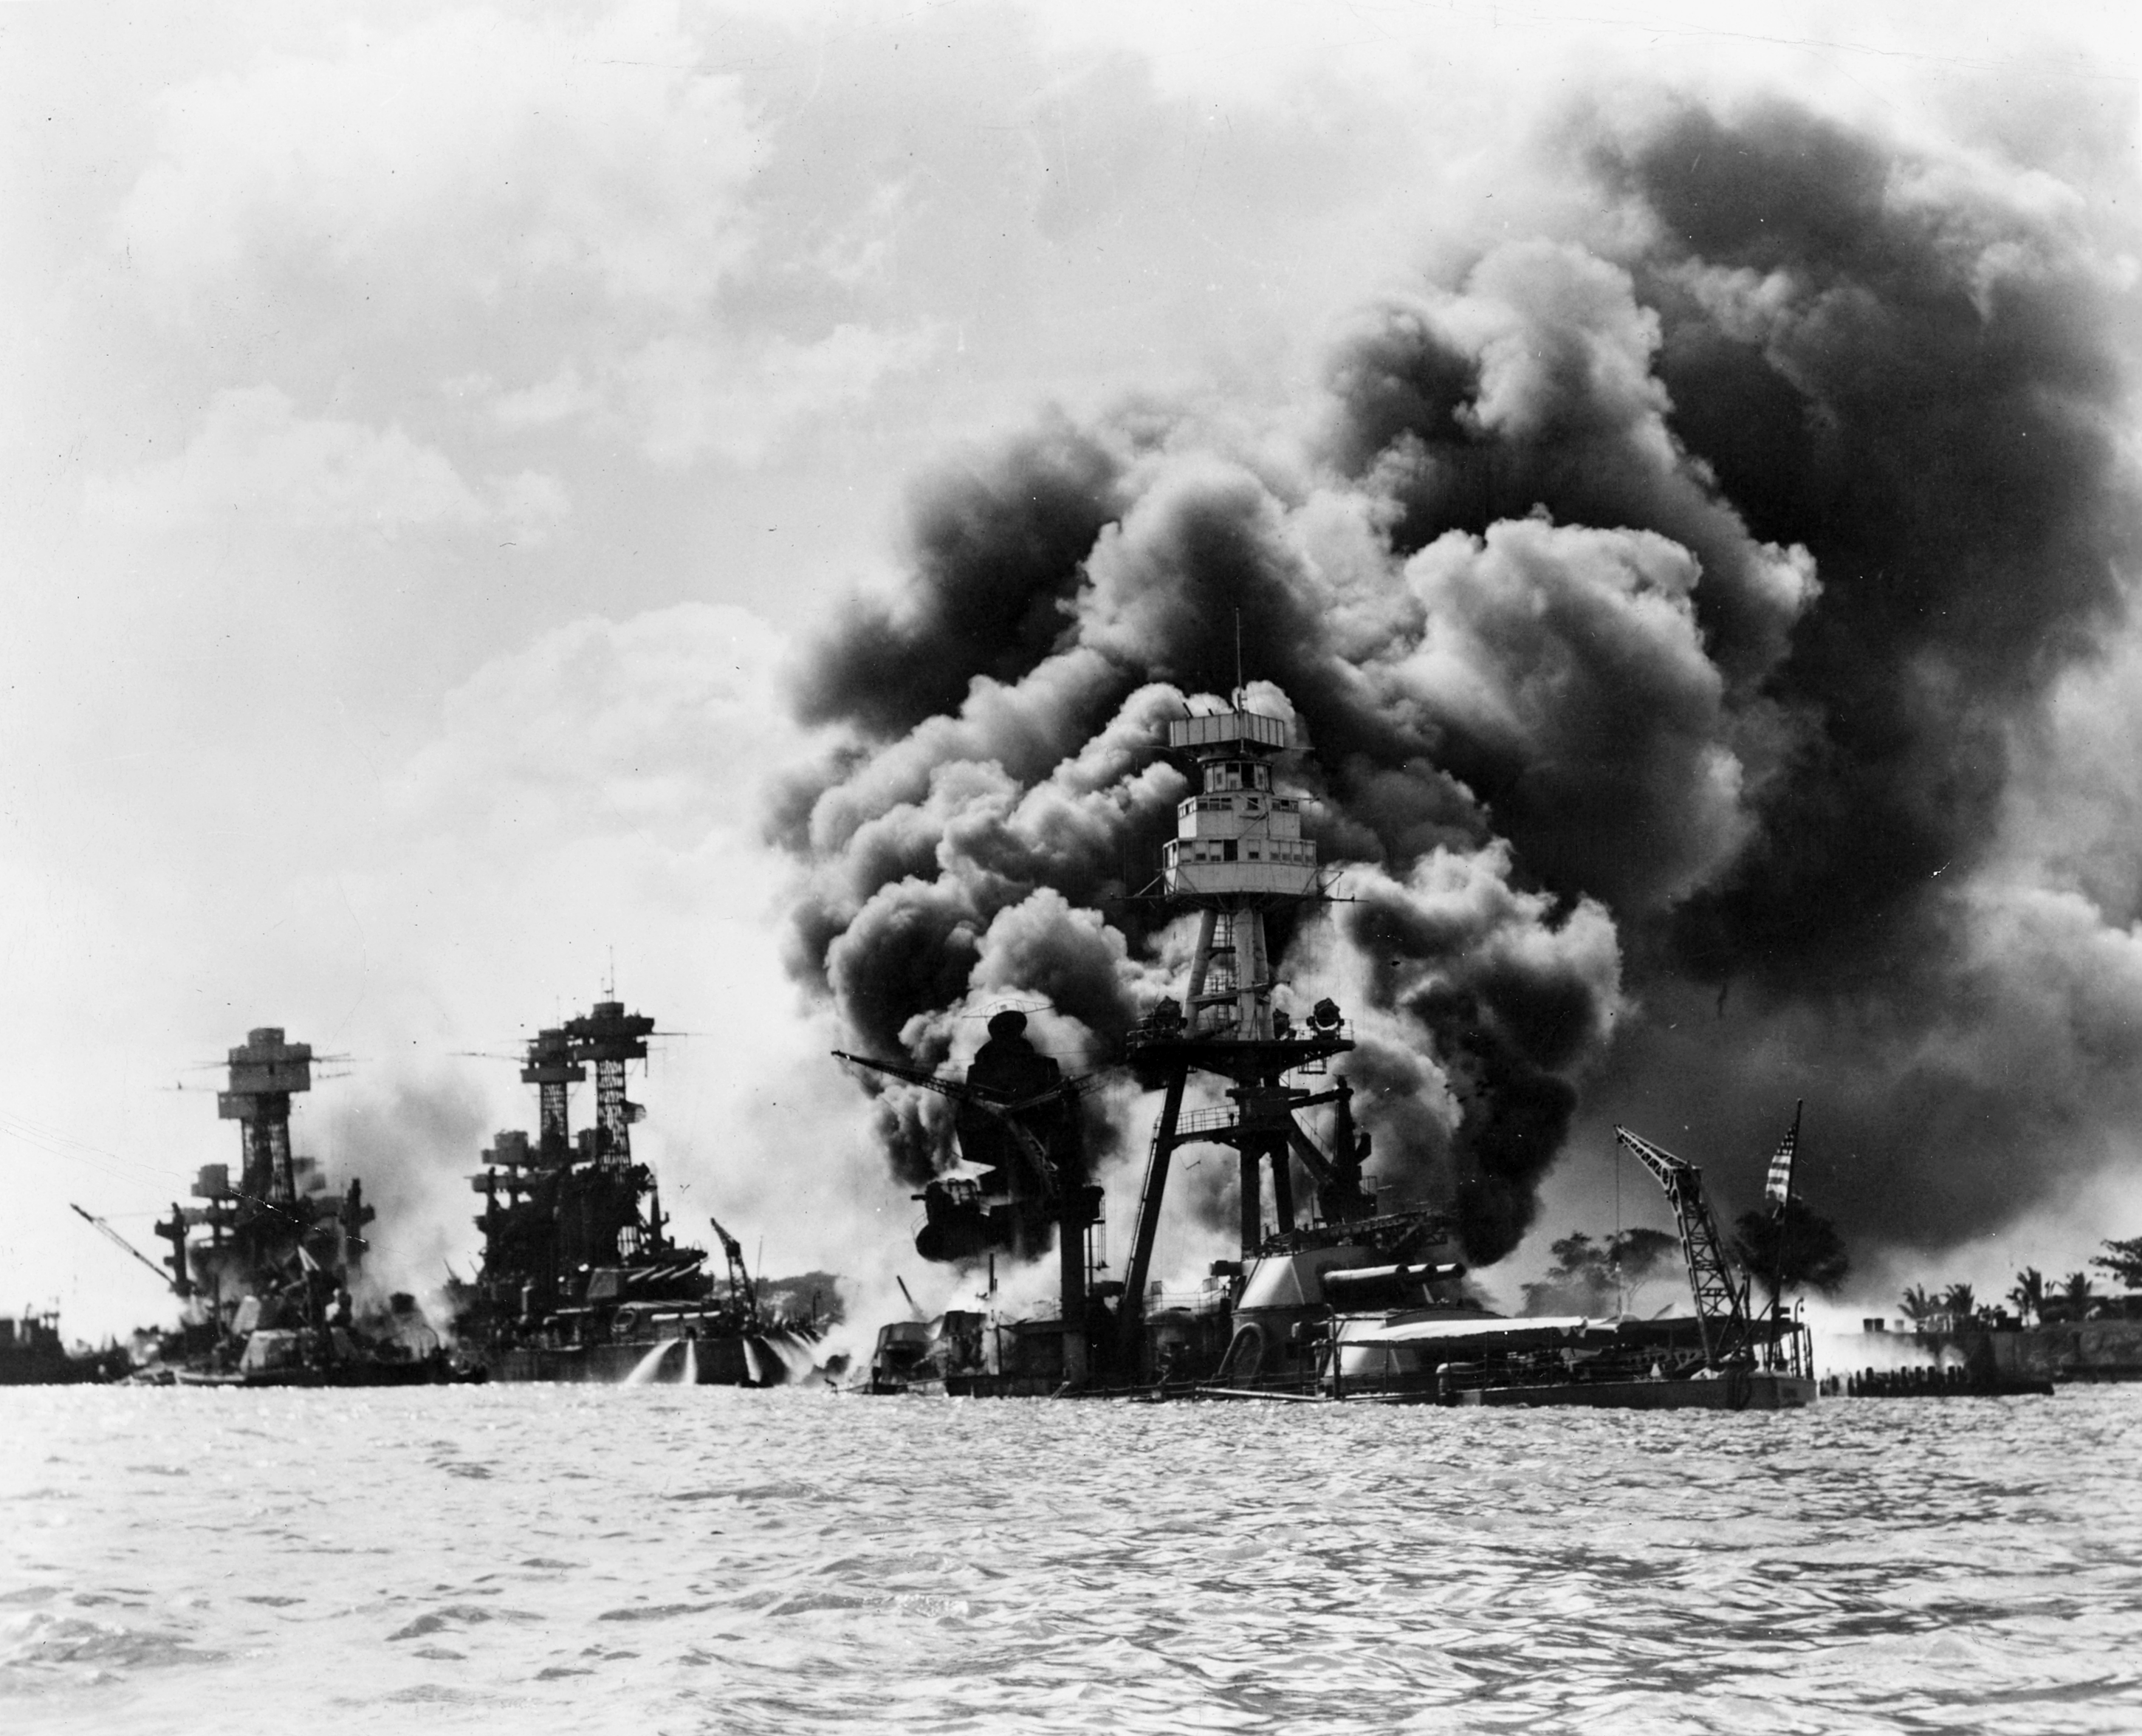 pearl harbour thesis failing history on emaze failing history on emaze attack on pearl harbor essay